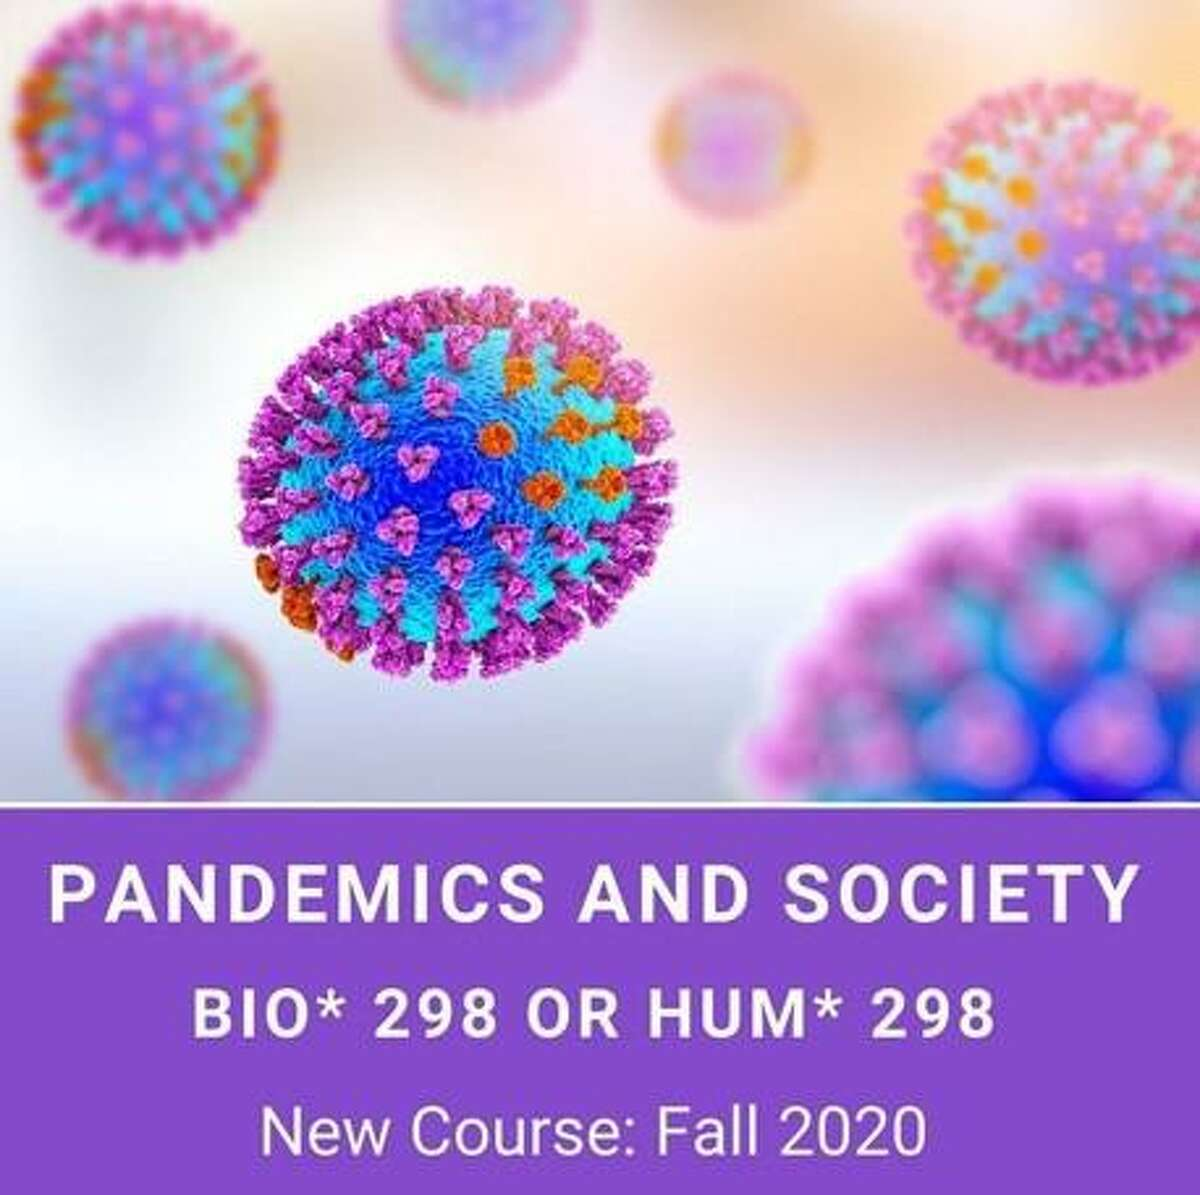 Northwestern Connecticut Community College announces the addition of a new course: Pandemics and Society this fall.